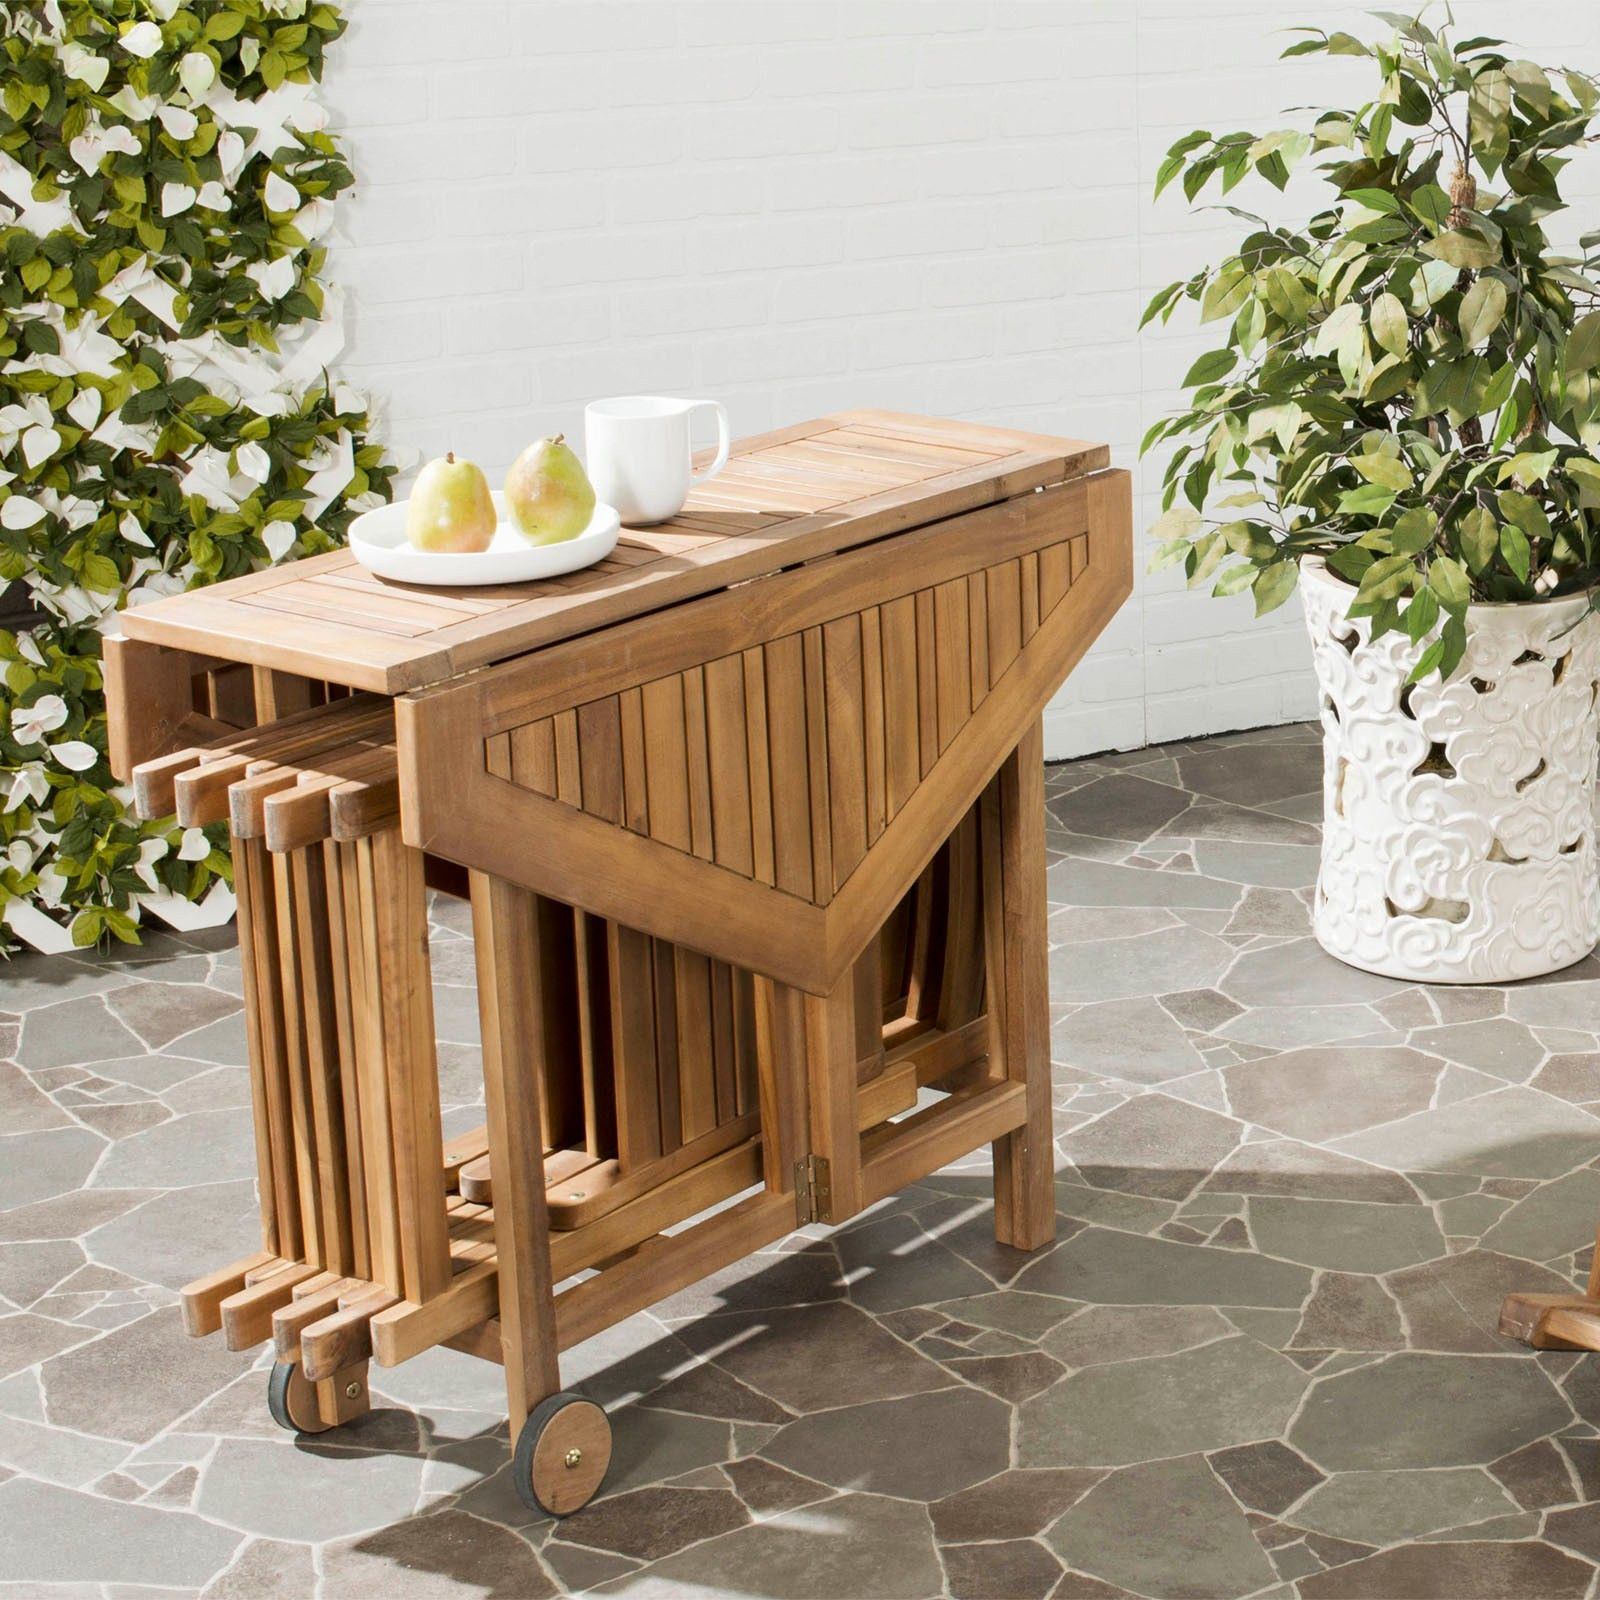 Remarkable Outdoor Collapsible Dining Table Set By Safavieh Wedding Gmtry Best Dining Table And Chair Ideas Images Gmtryco